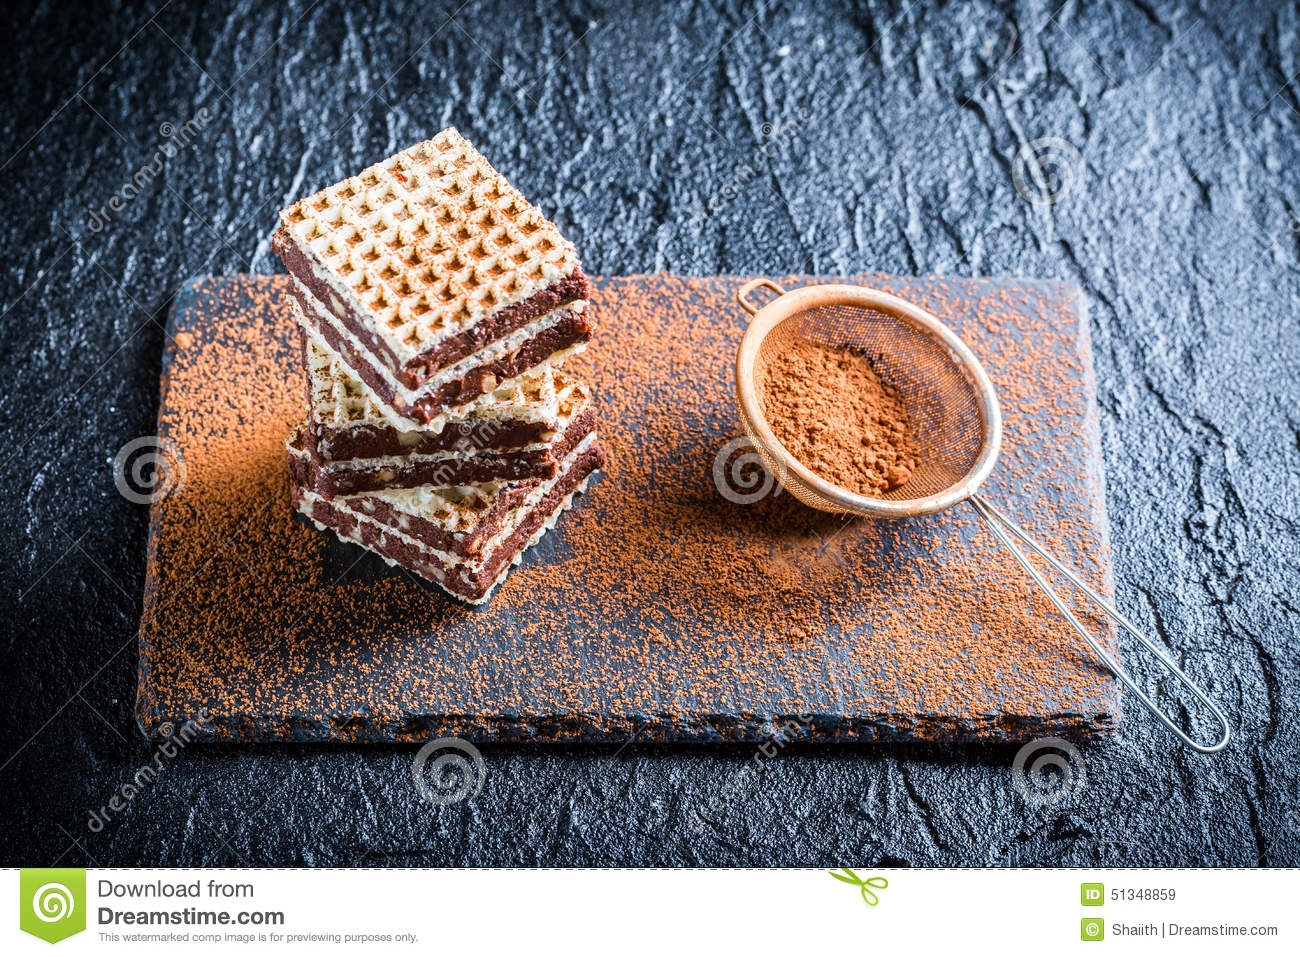 Homemade Wafers With Nuts And Chocolate Stock Photo - Image: 51348859